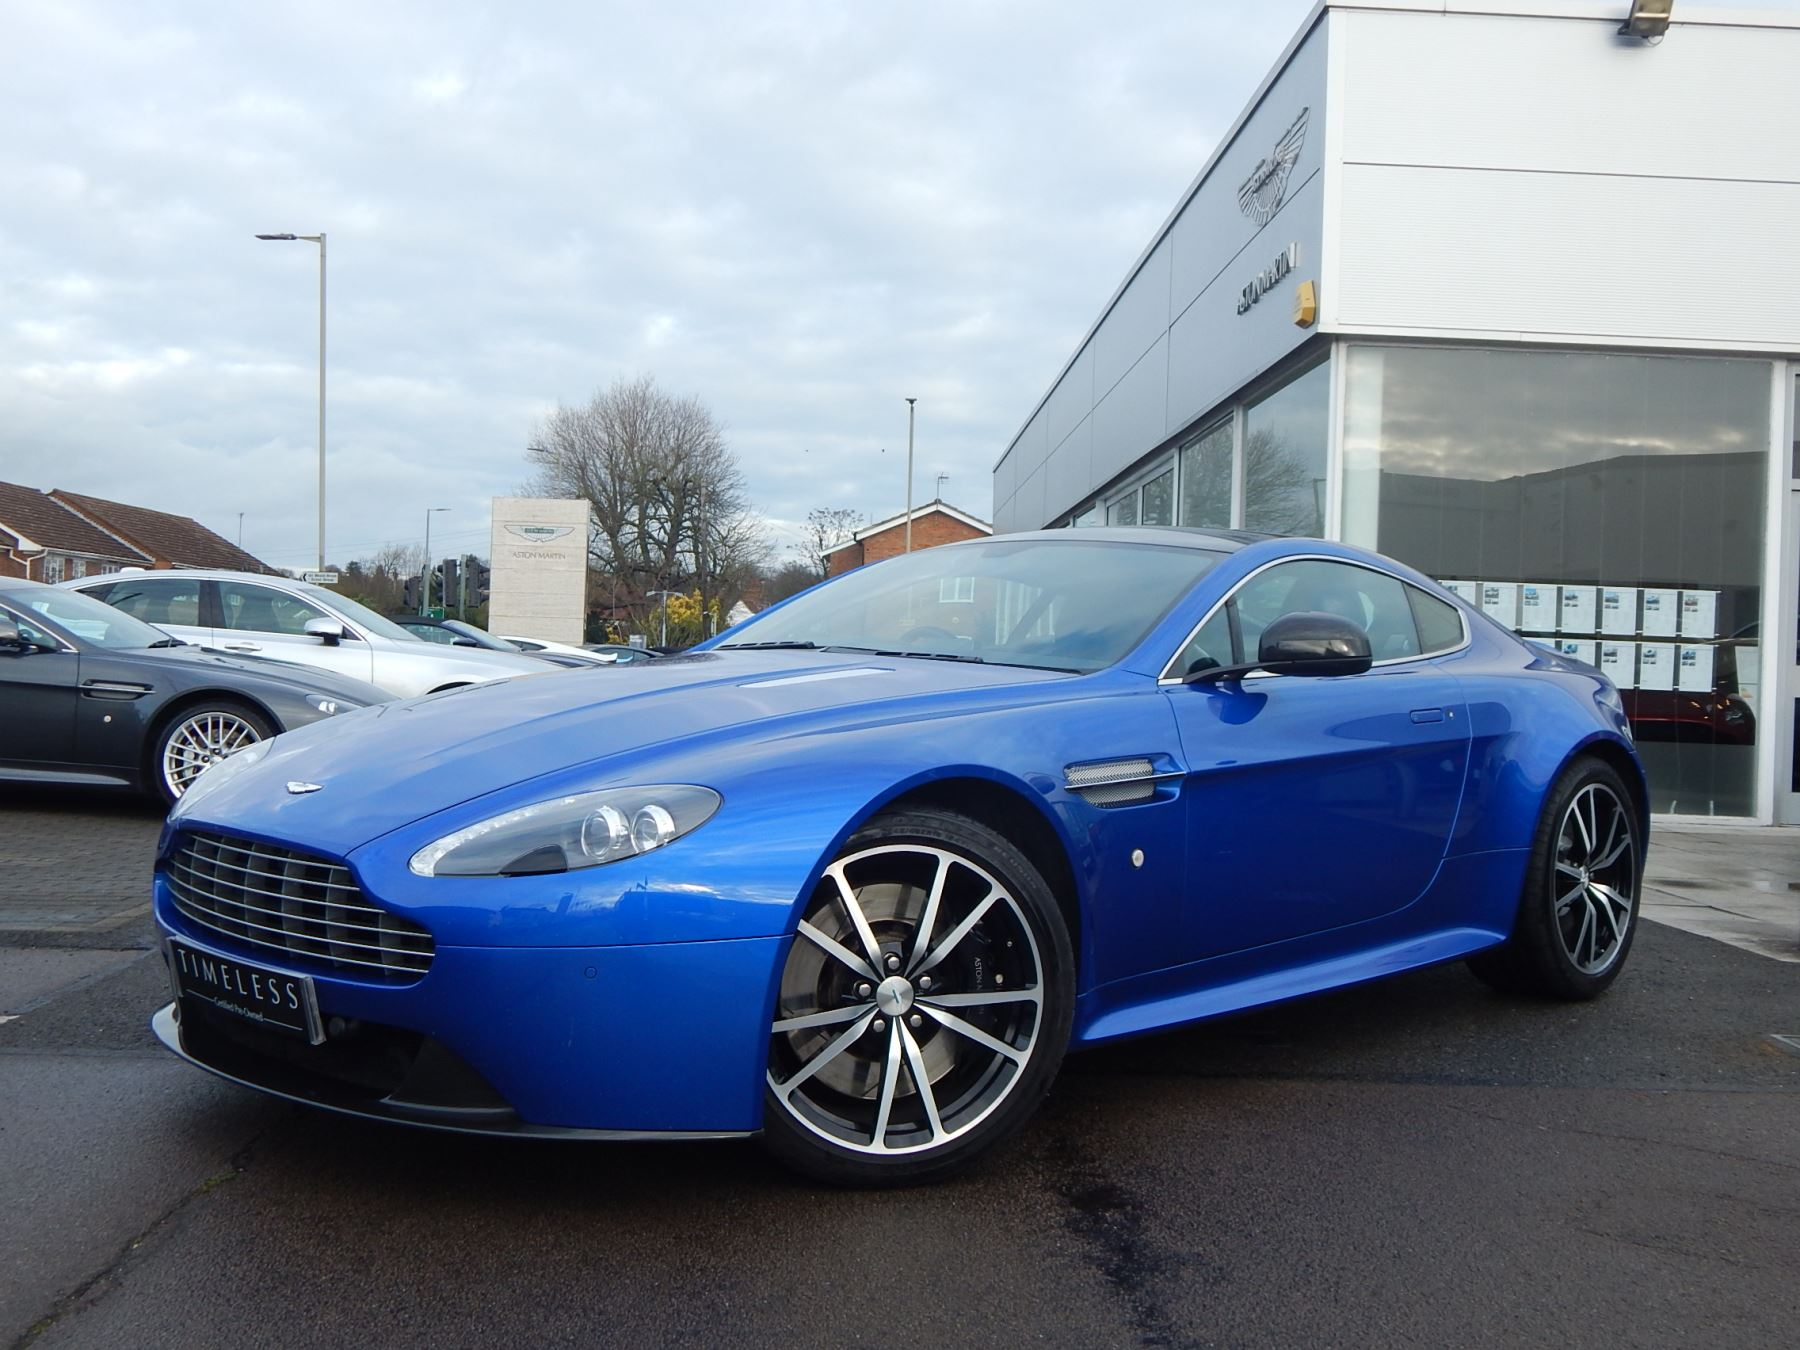 Aston Martin V8 Vantage S Coupe S 2dr Sportshift 4.7 Automatic 3 door Coupe (2015) image